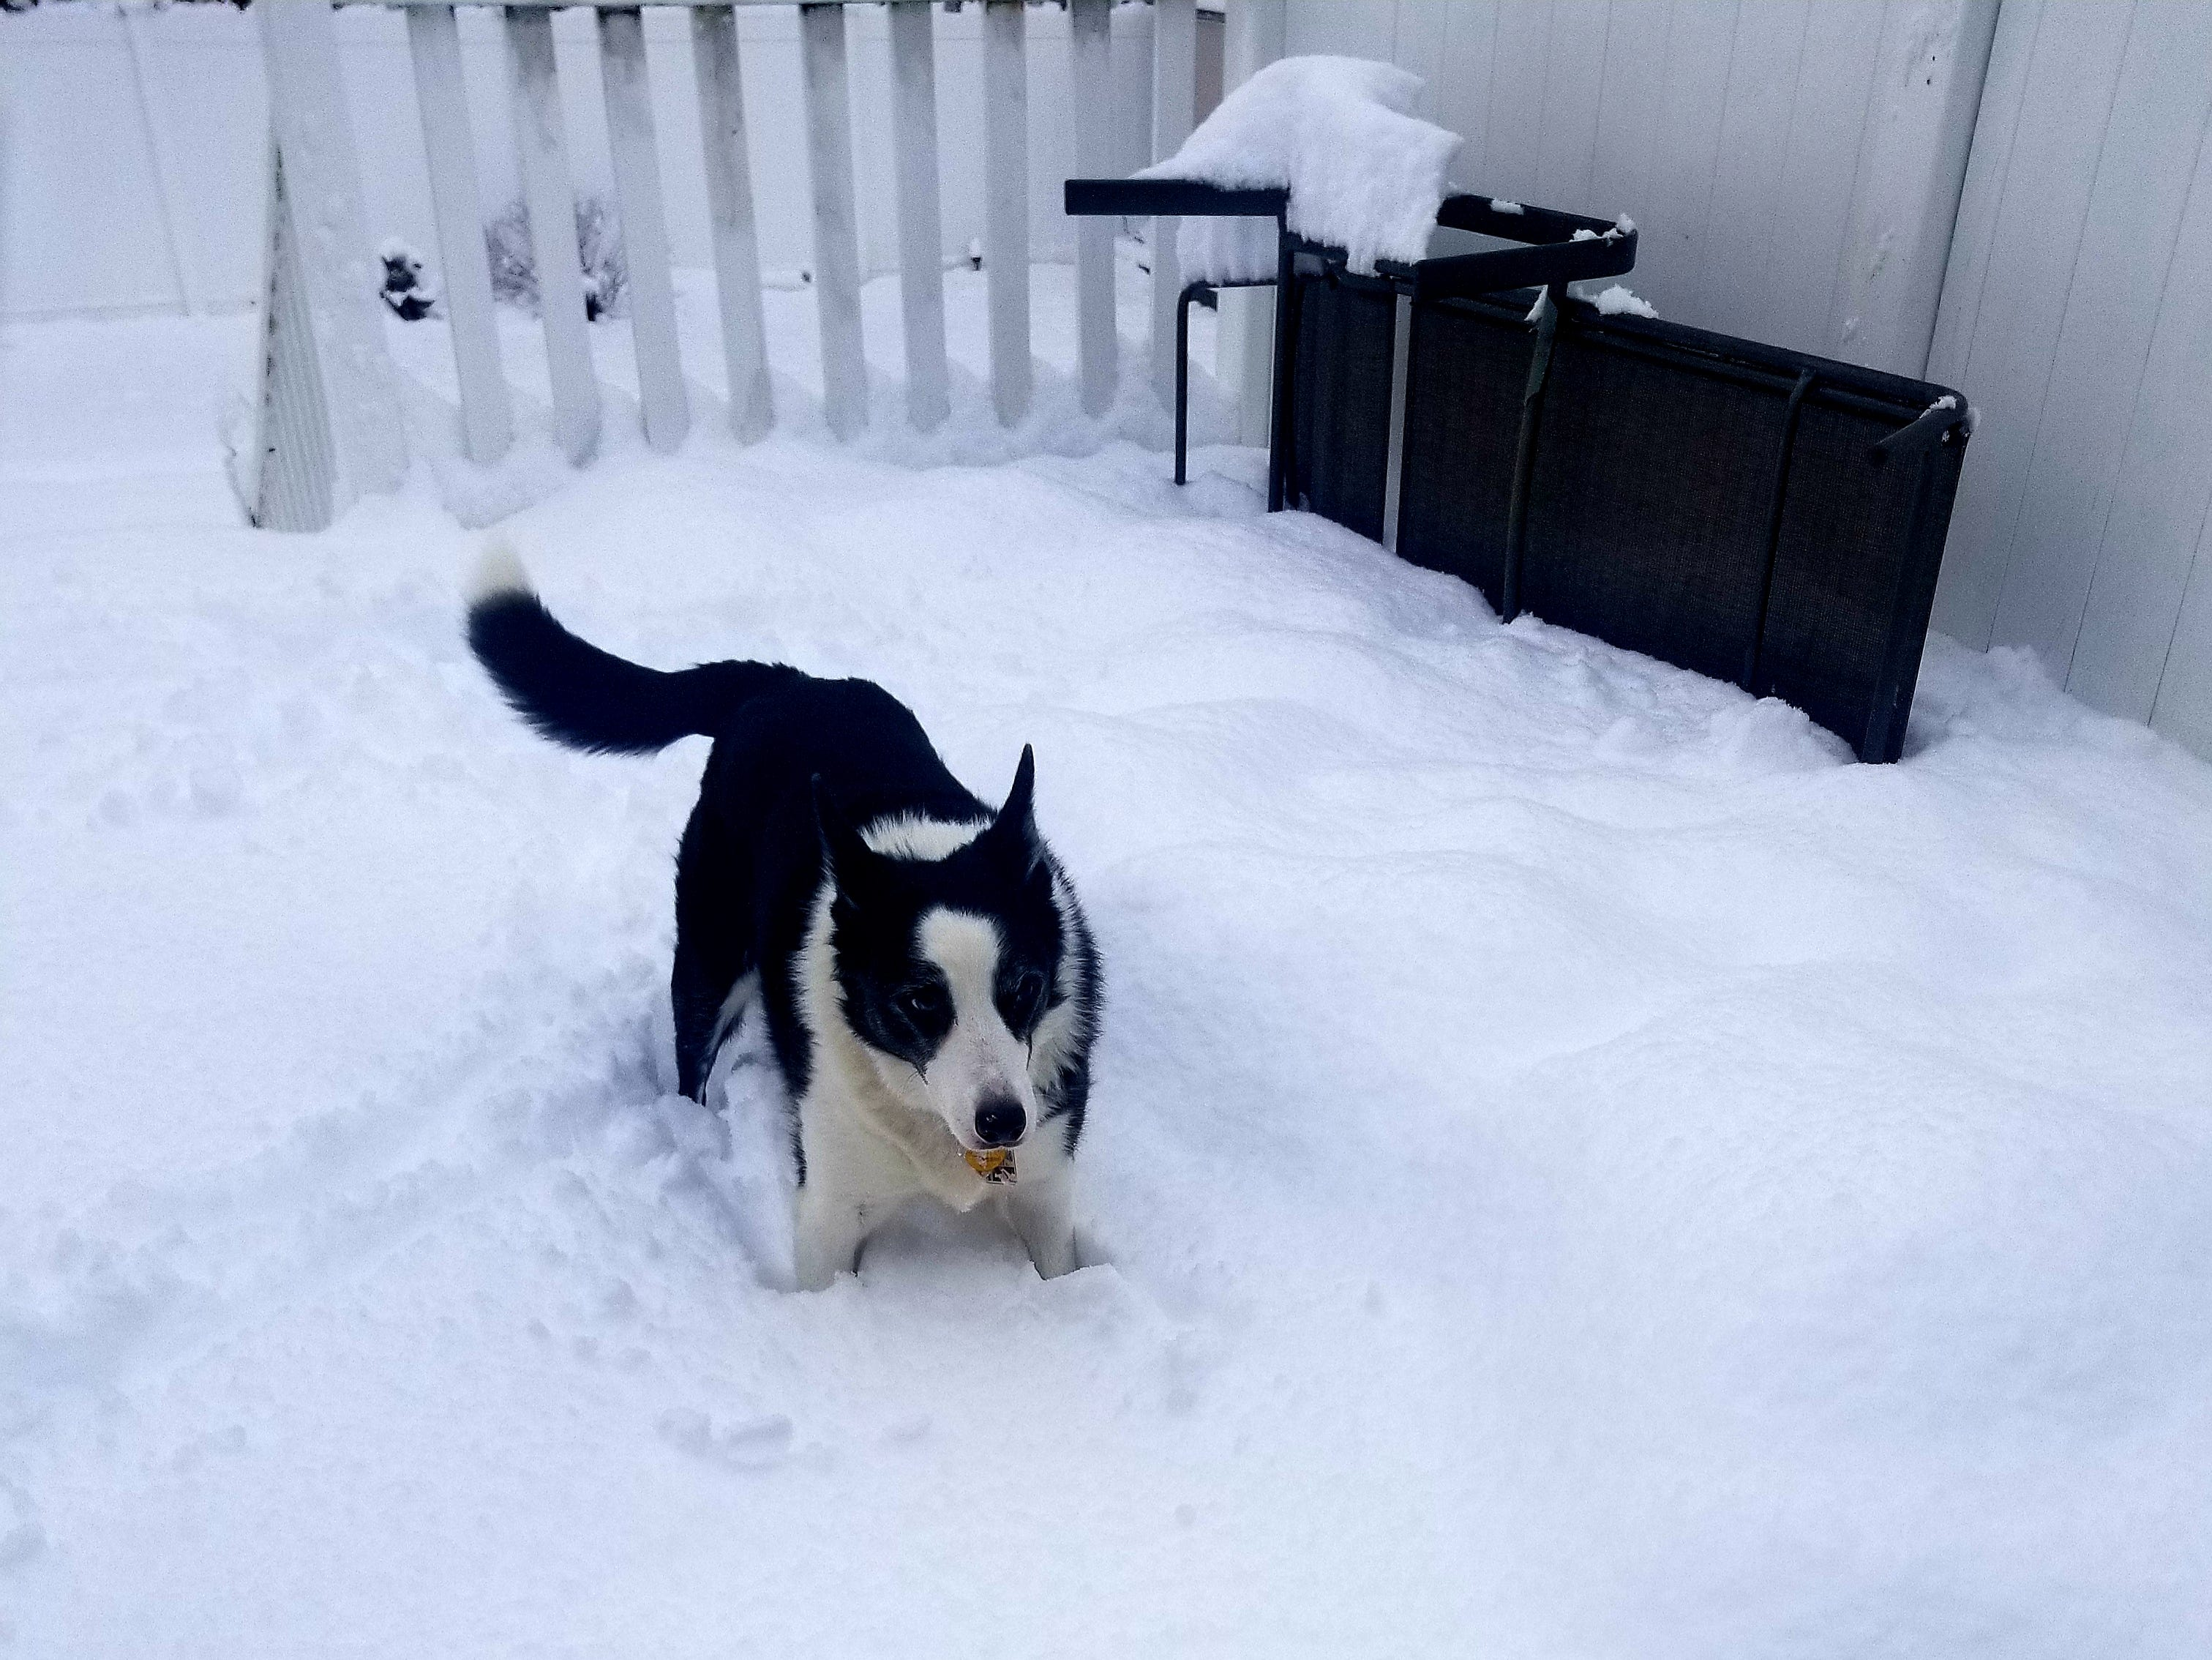 Sophie takes to the snow on Winding Way in Cedar Grove.